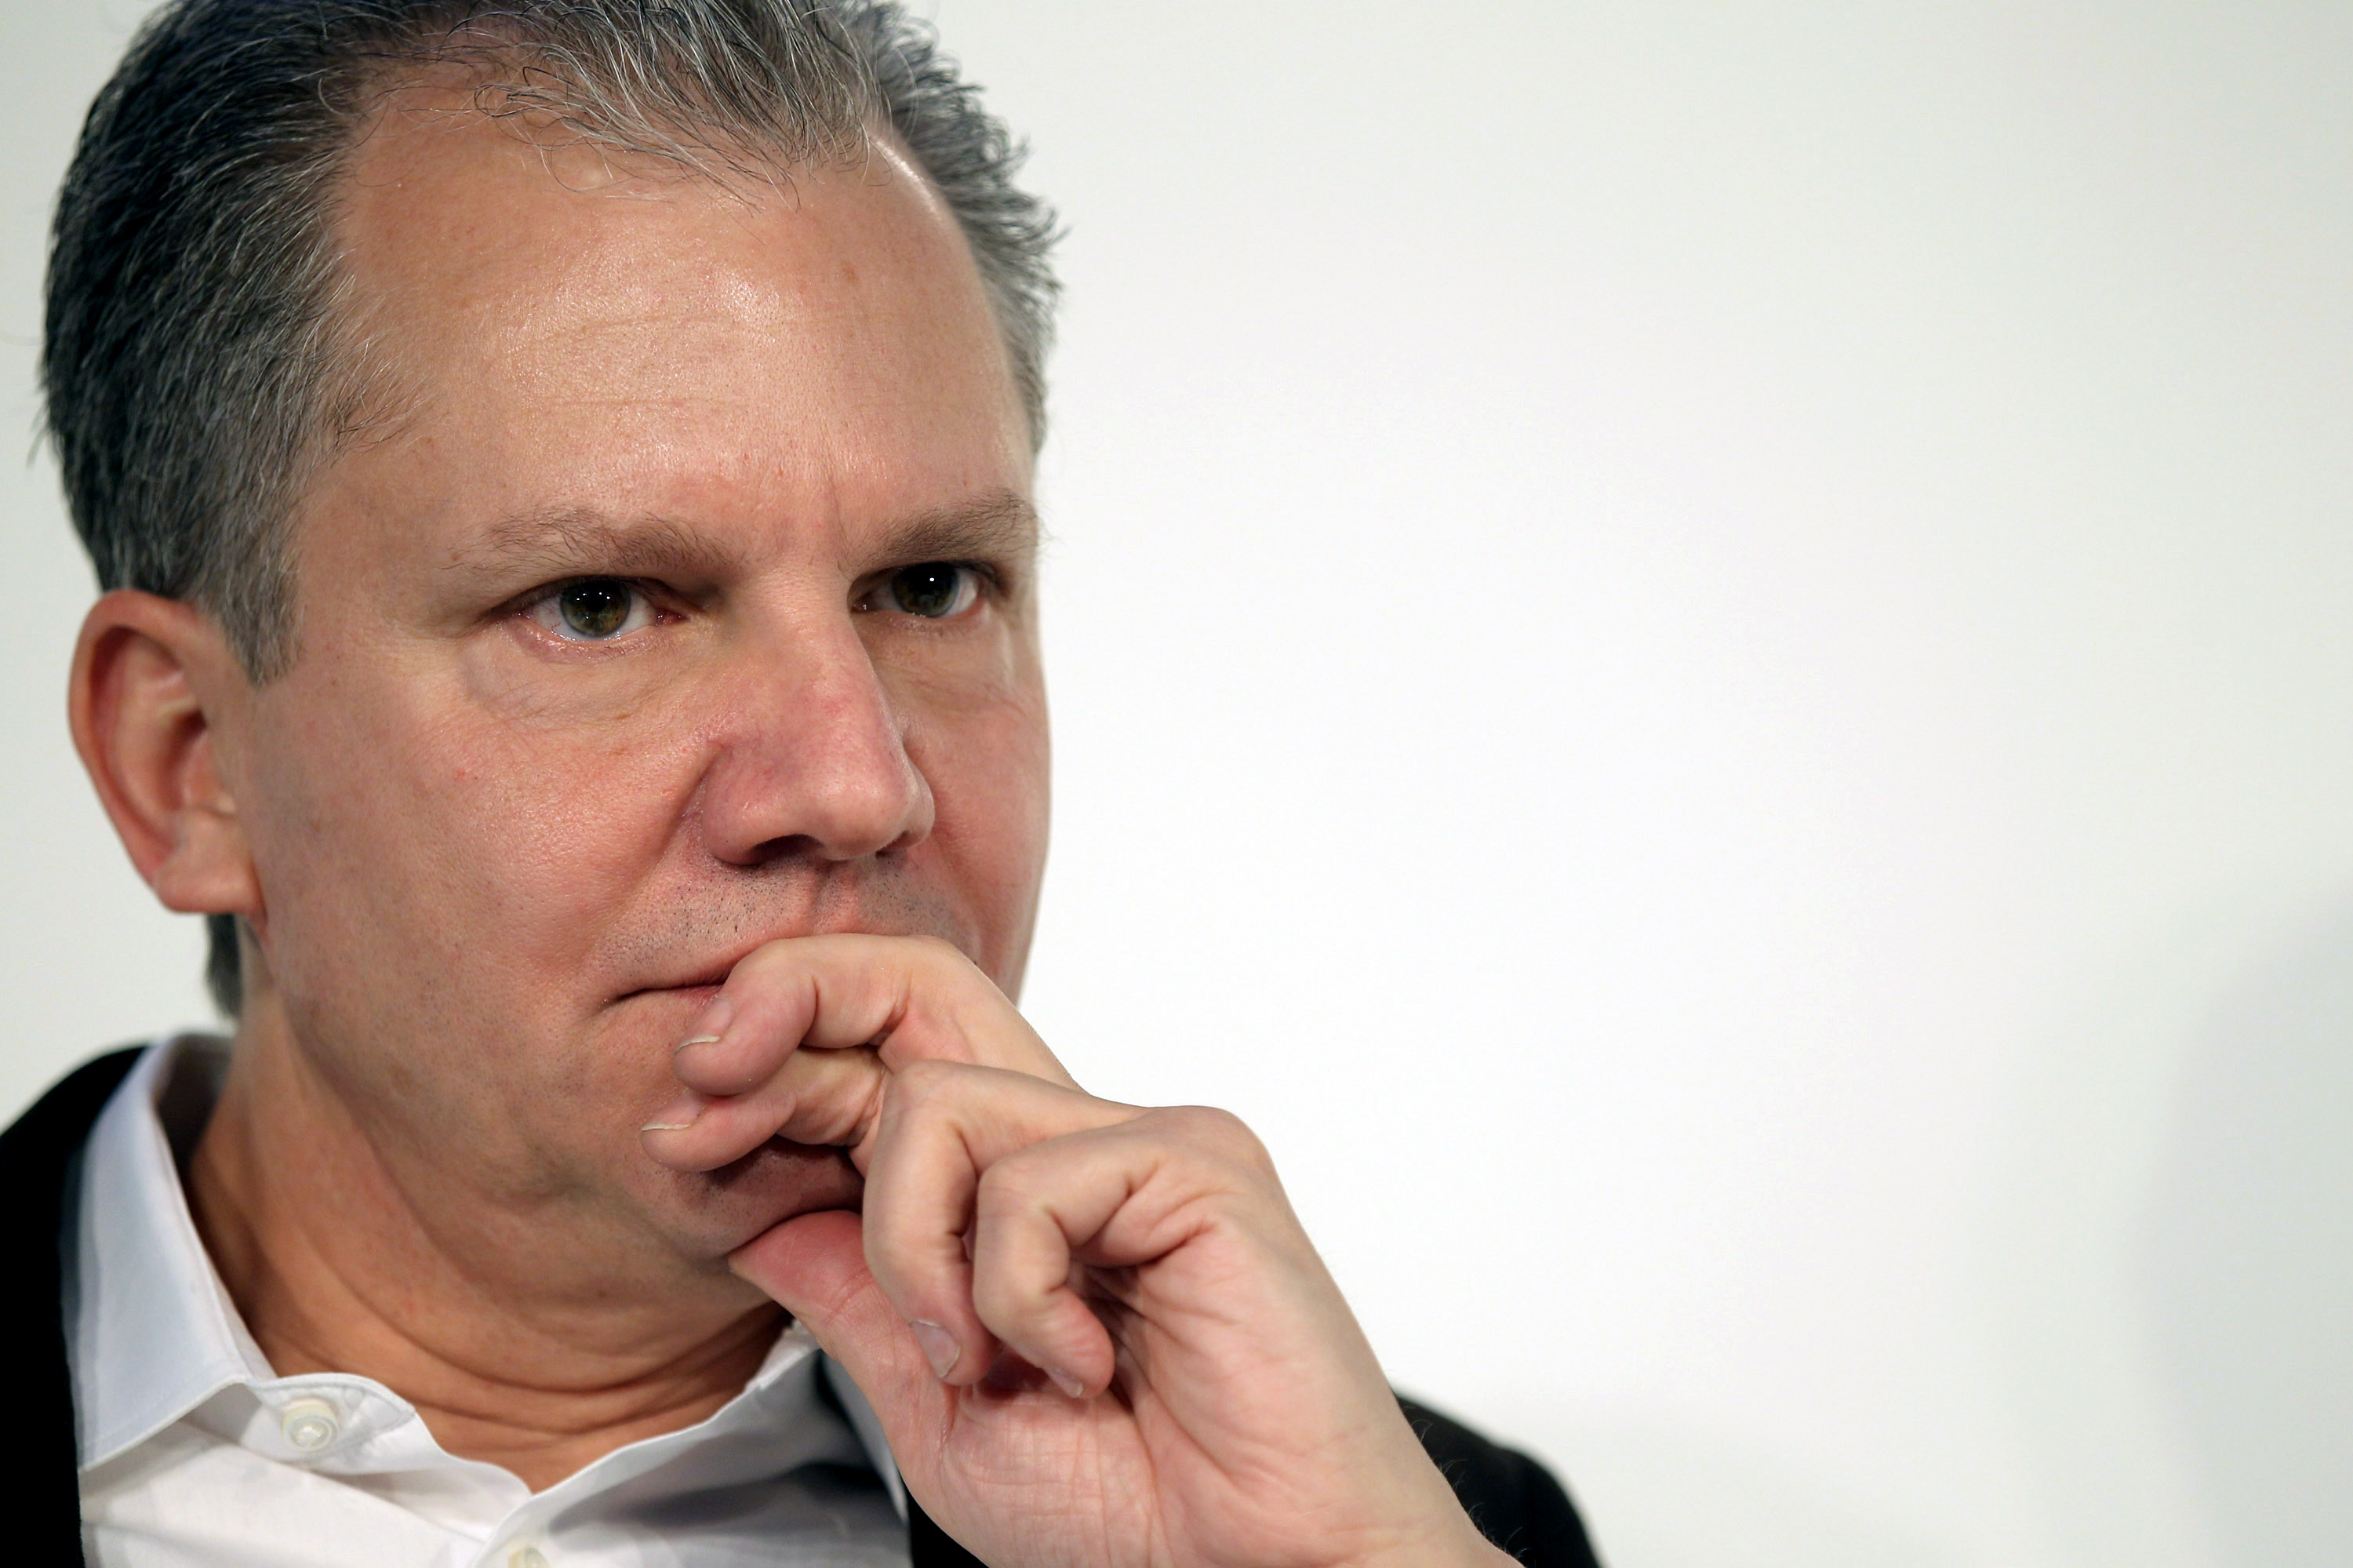 Arthur Sulzberger, chairman and publisher of The New York Times, looks on during the Digital Life Design (DLD) conference